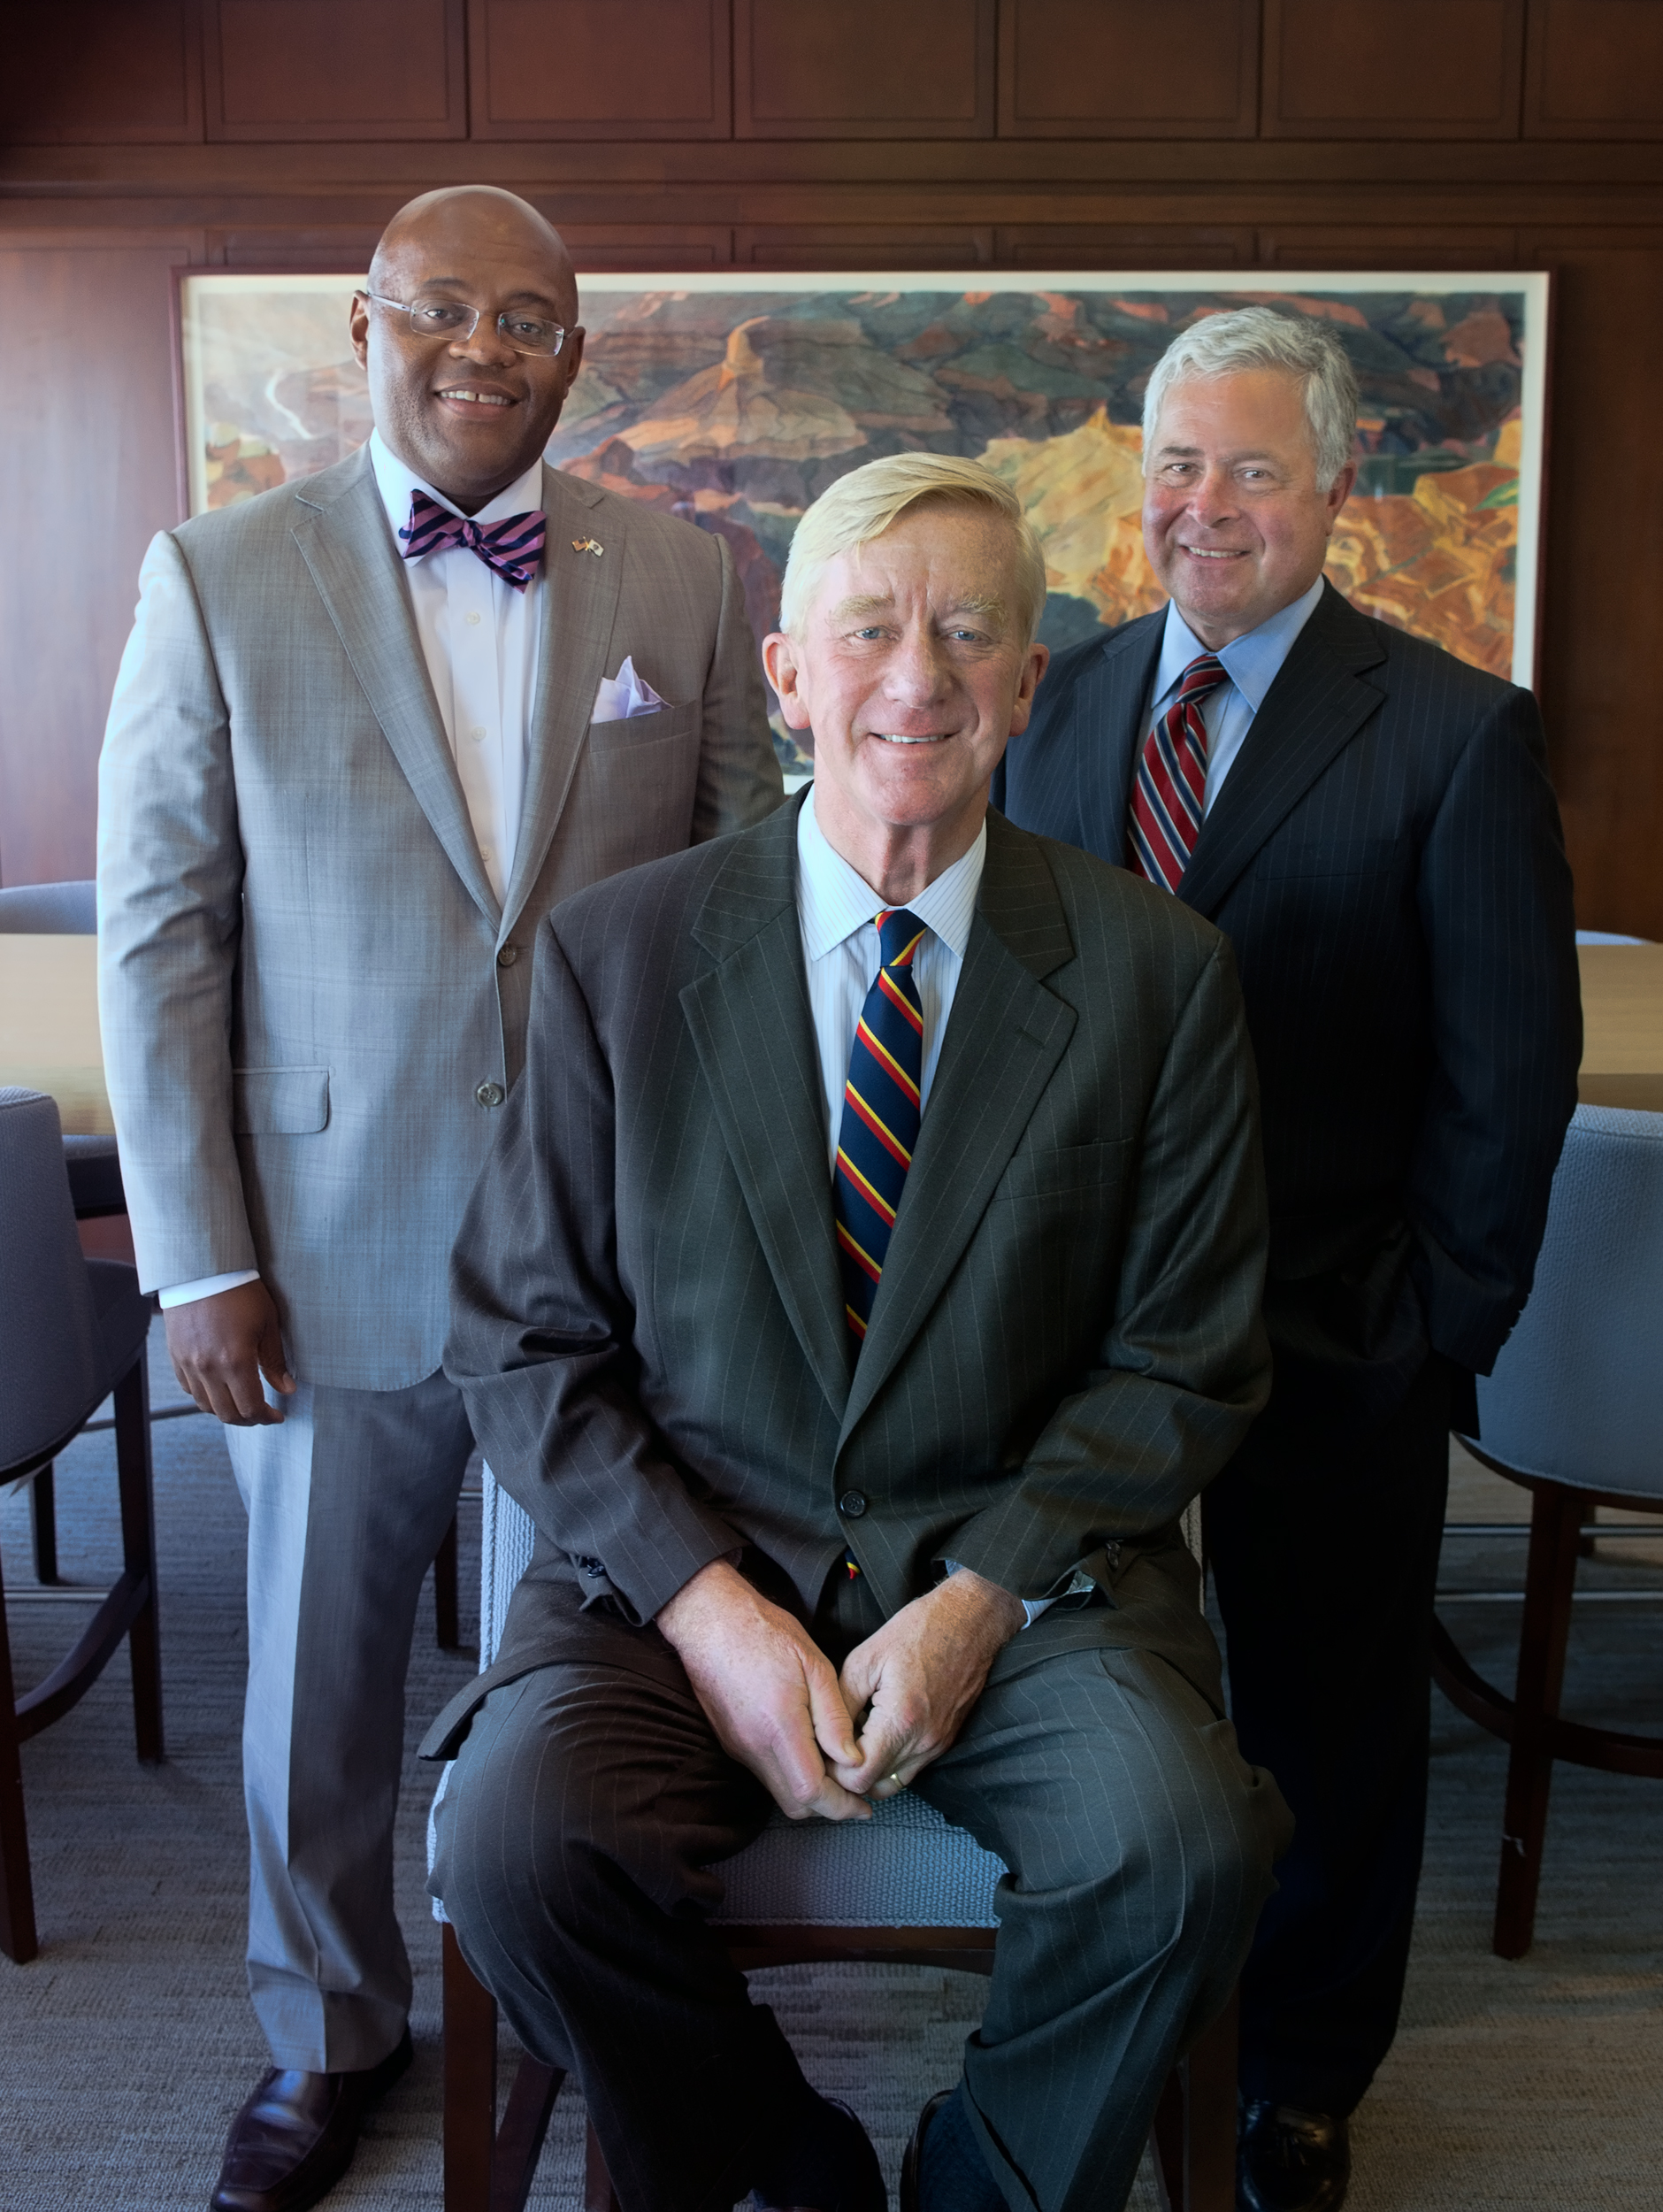 Bill Weld with the ML Consulting Group